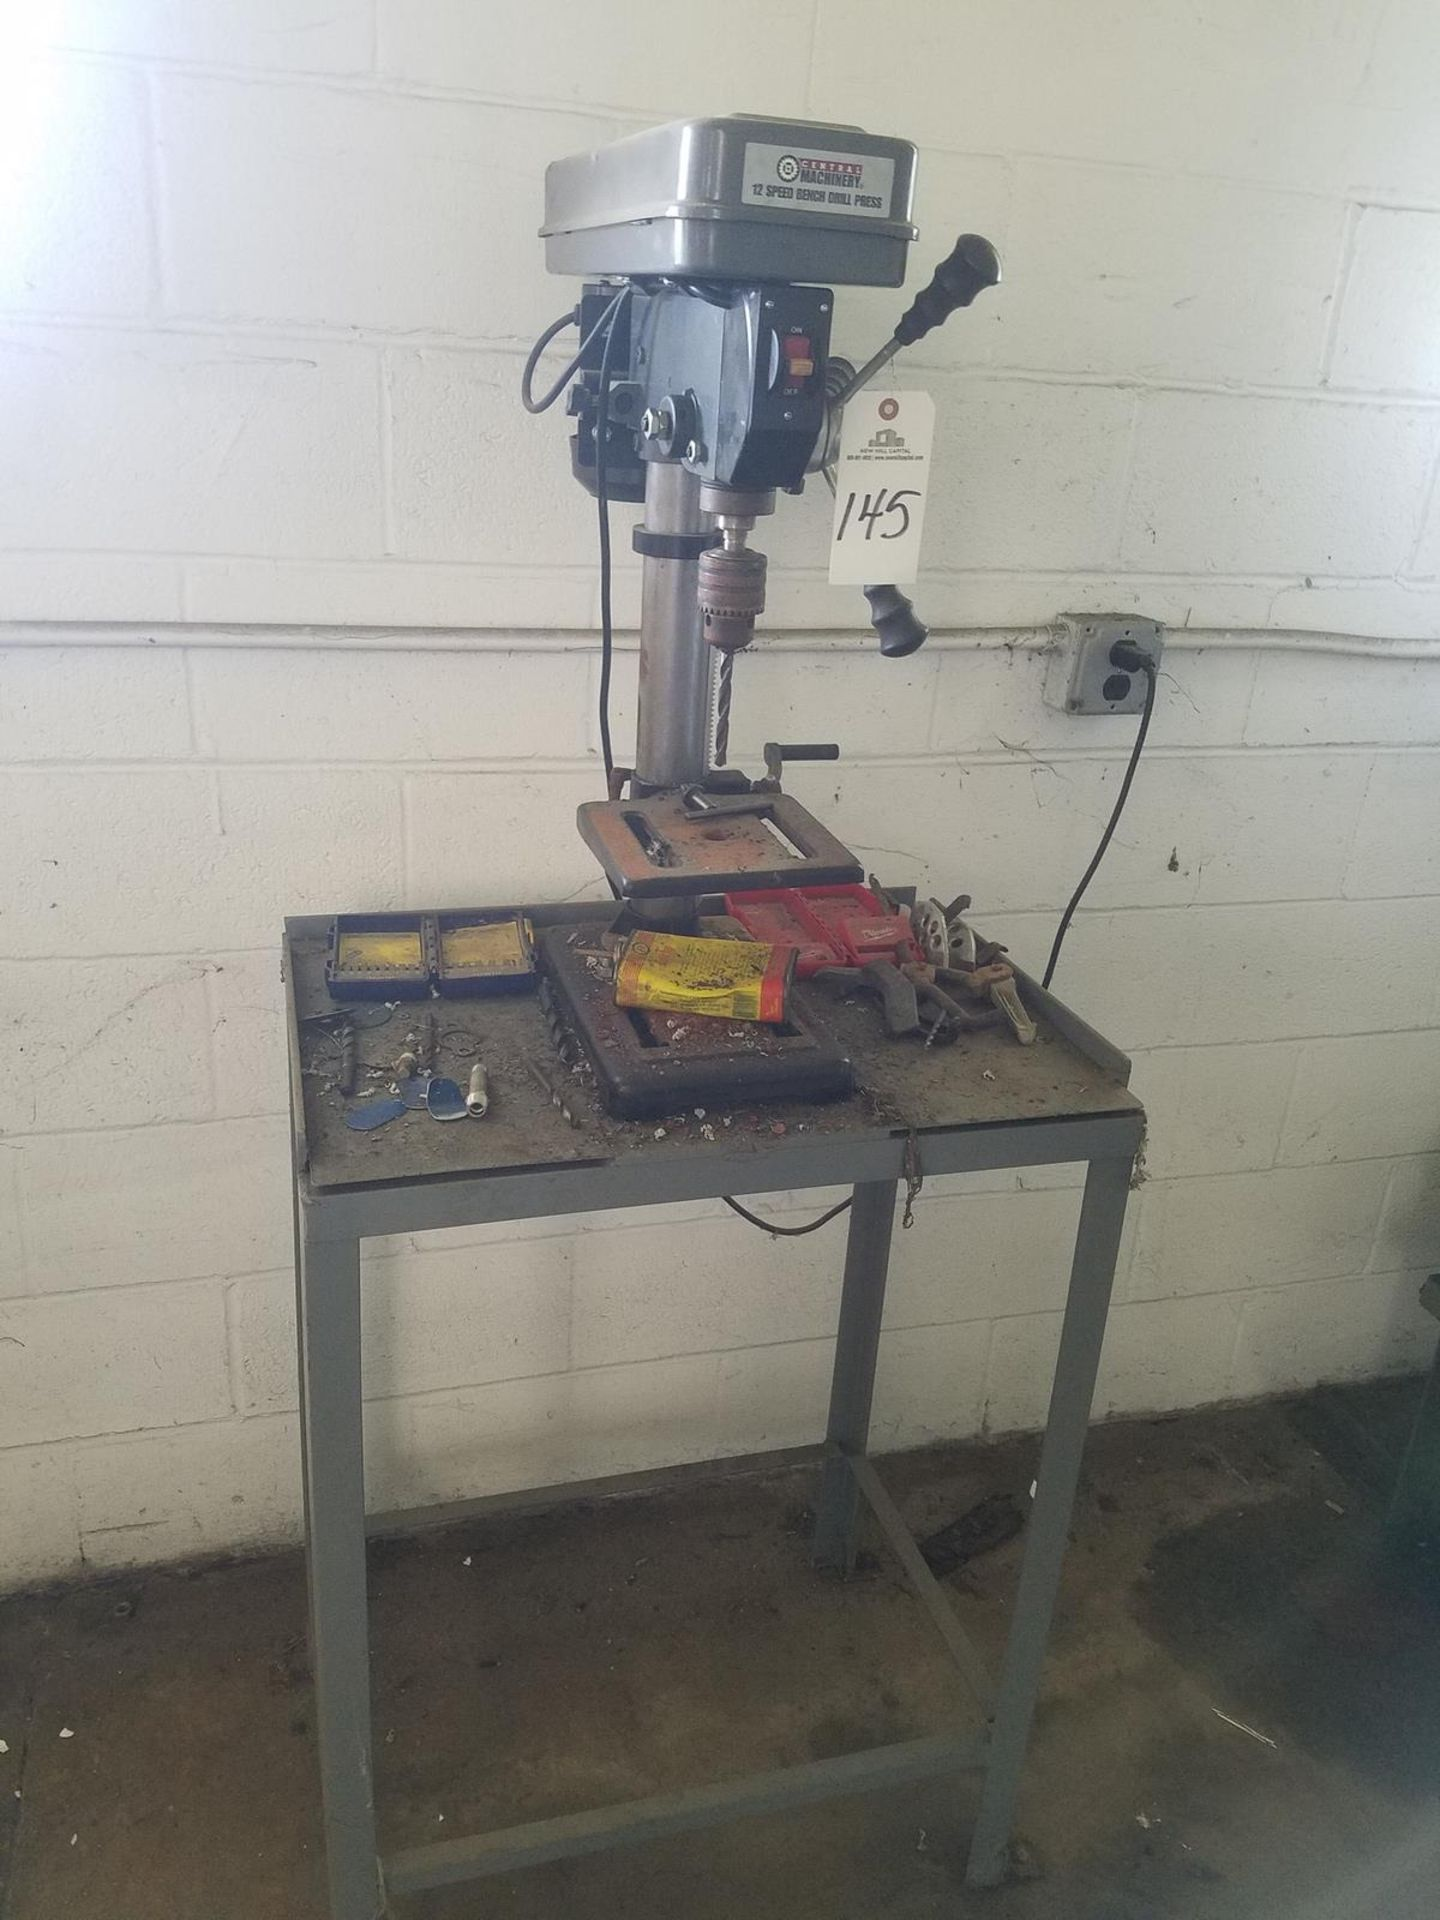 Lot 145 - Central Machinery Bench Drill Press | Rig Fee: $50